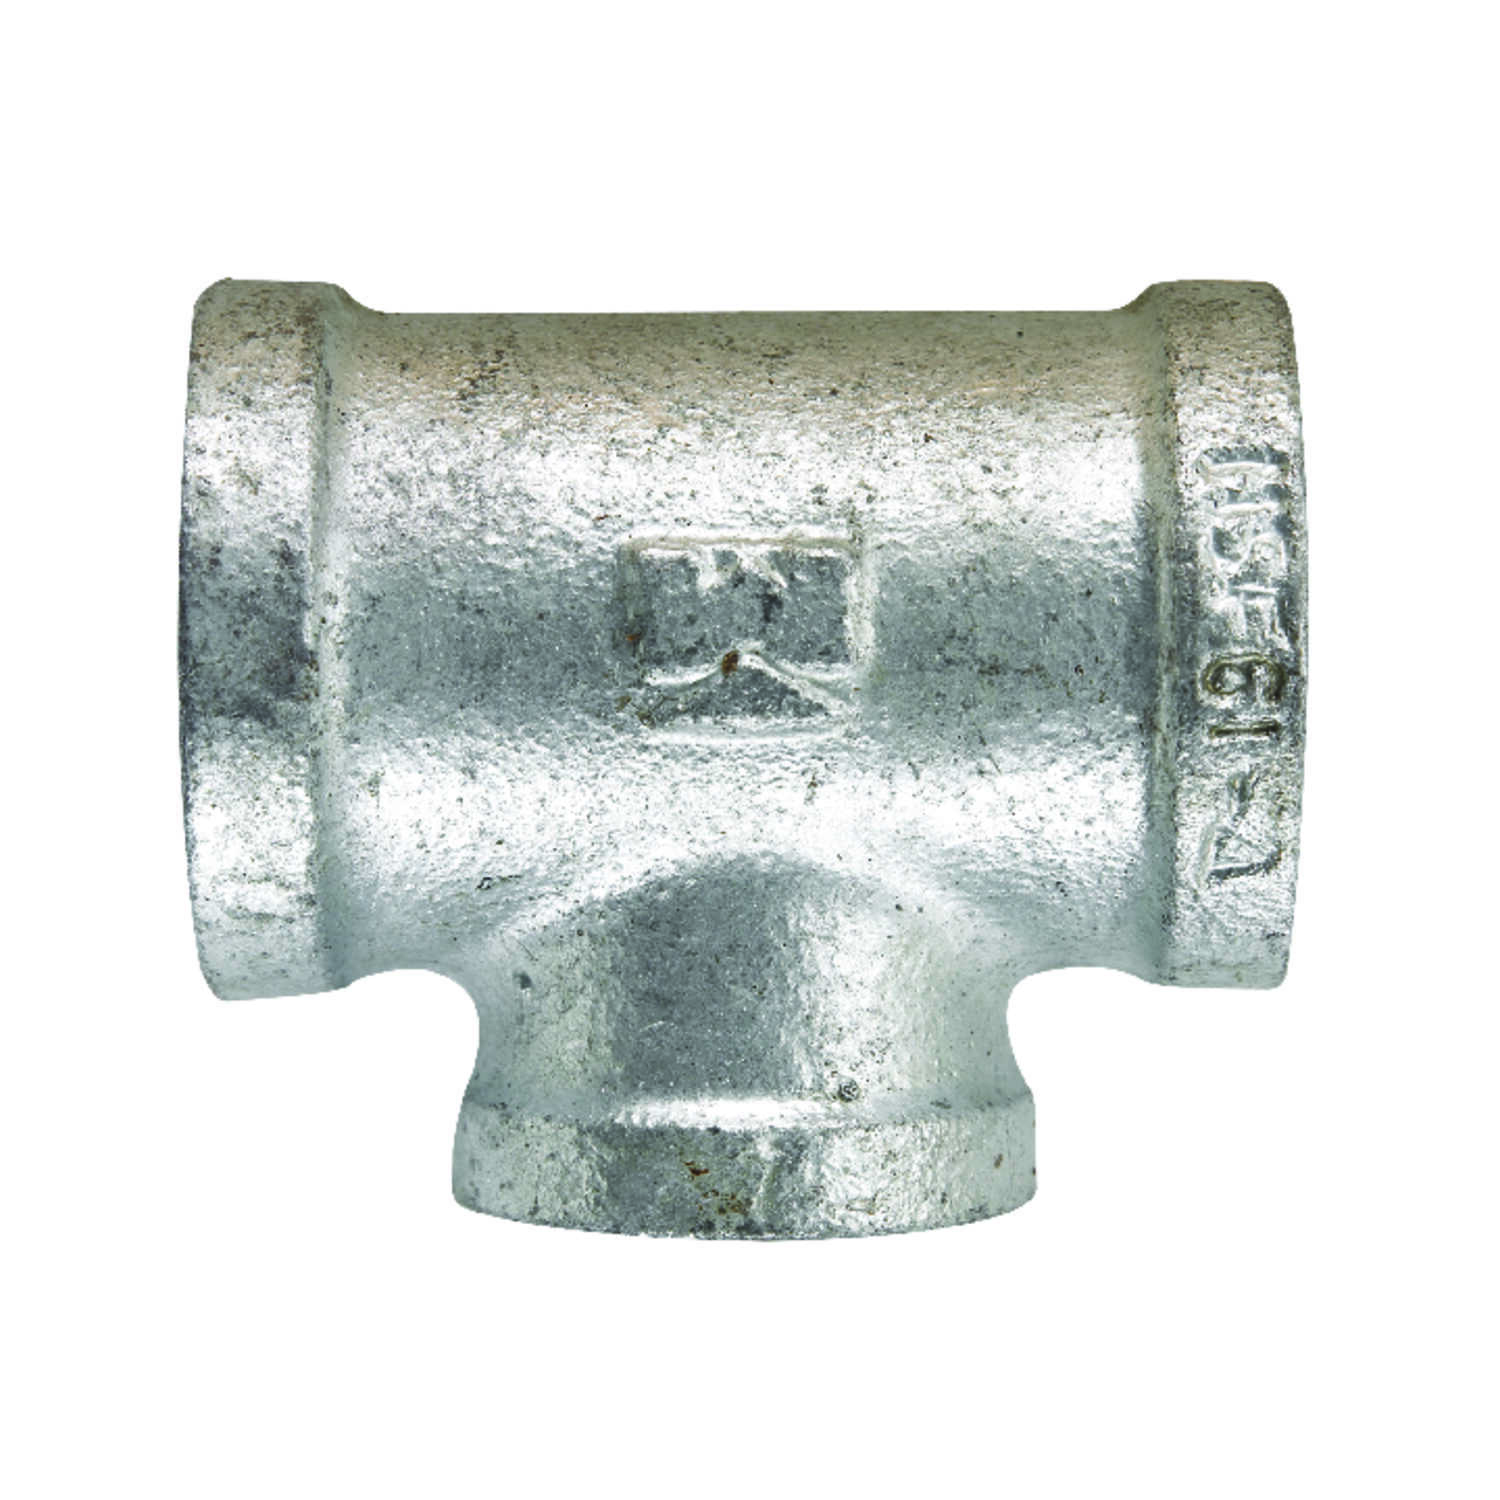 BK Products  1/2 in. FPT   x 1/2 in. Dia. FPT  Galvanized  Malleable Iron  Reducing Tee